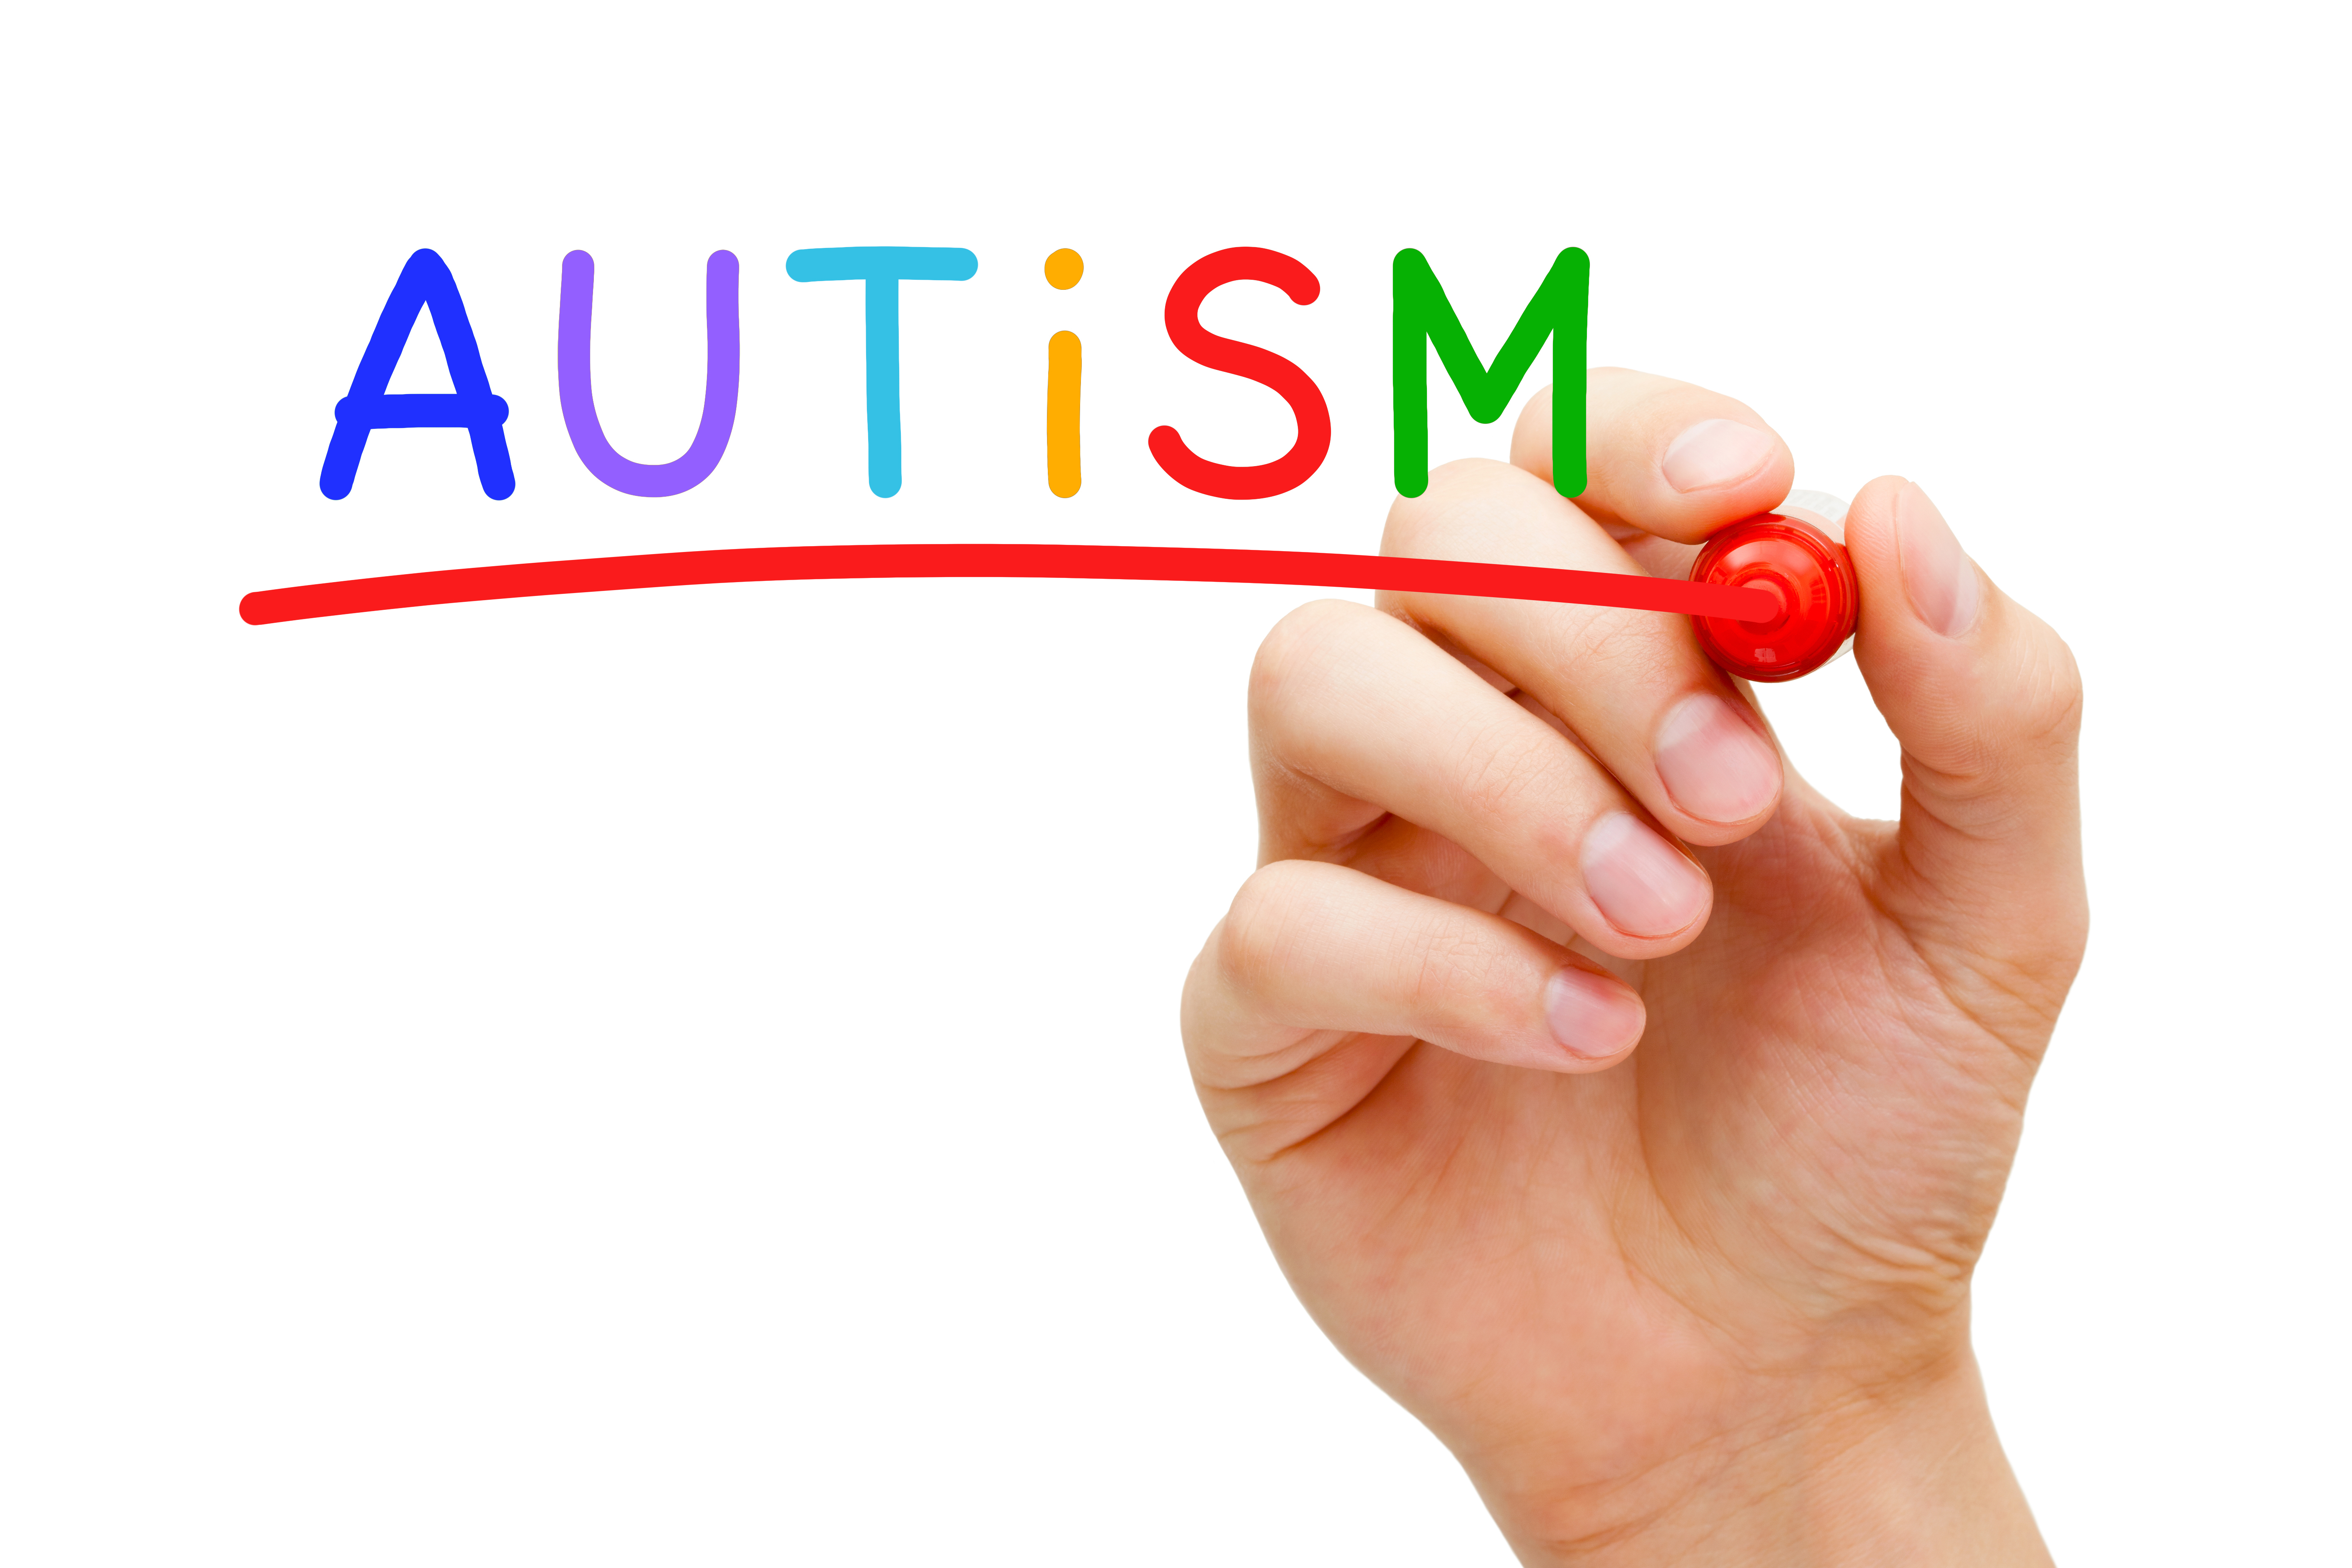 Dr. DeRamus Speaks about Autism Spectrum Disorder in ...